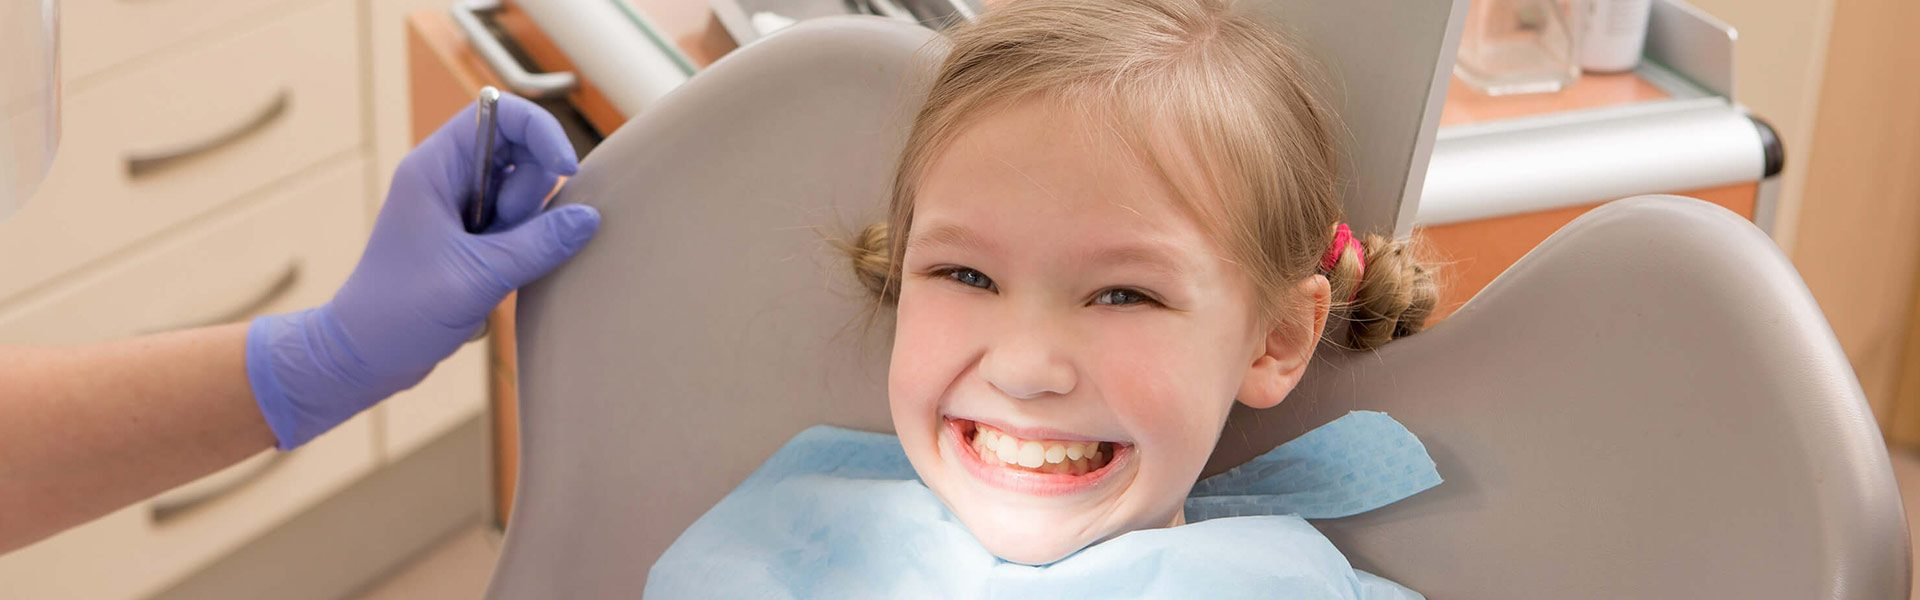 5 Tips to Help Prevent Fear for Kids at the Dental Office